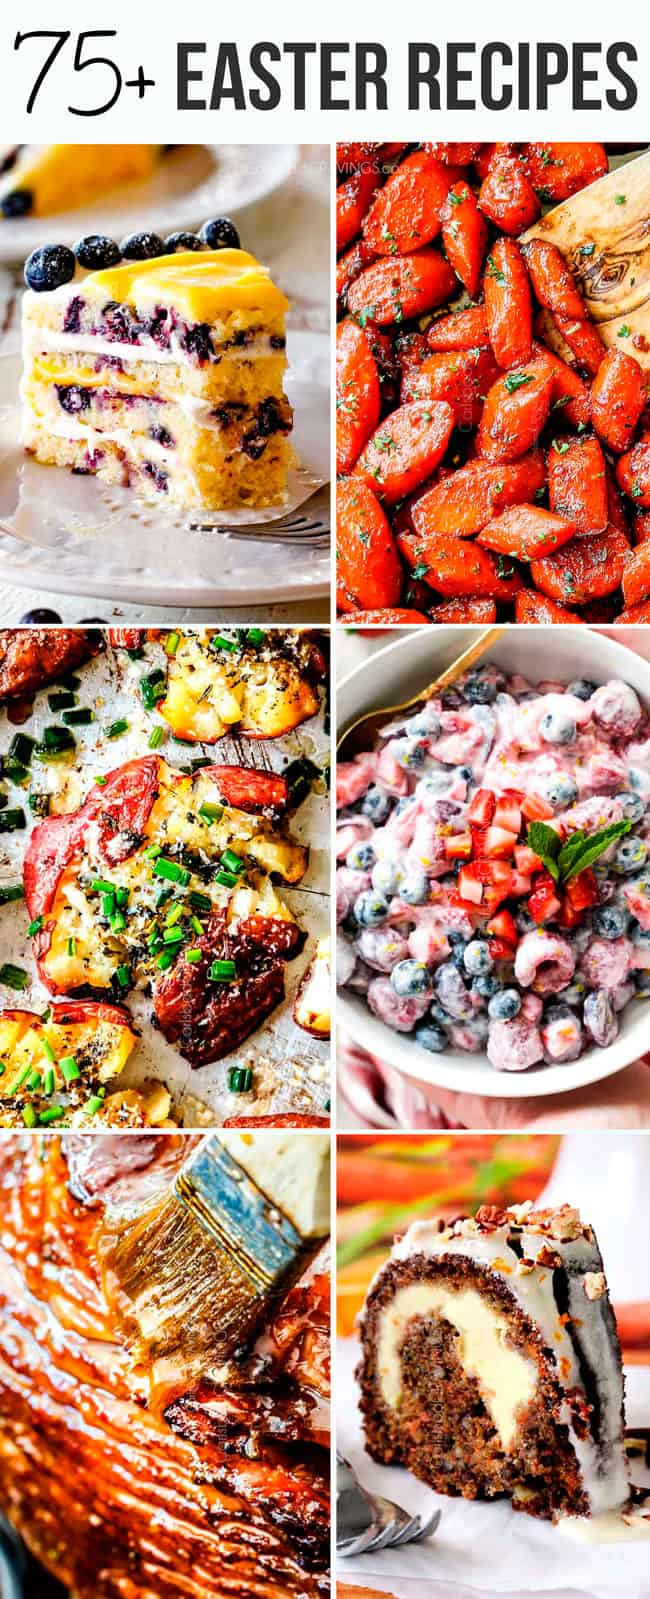 Over 75 of the best Easter Recipes from appetizers to sides, to ham, to dessert! Plan your whole Easter menu from one place!